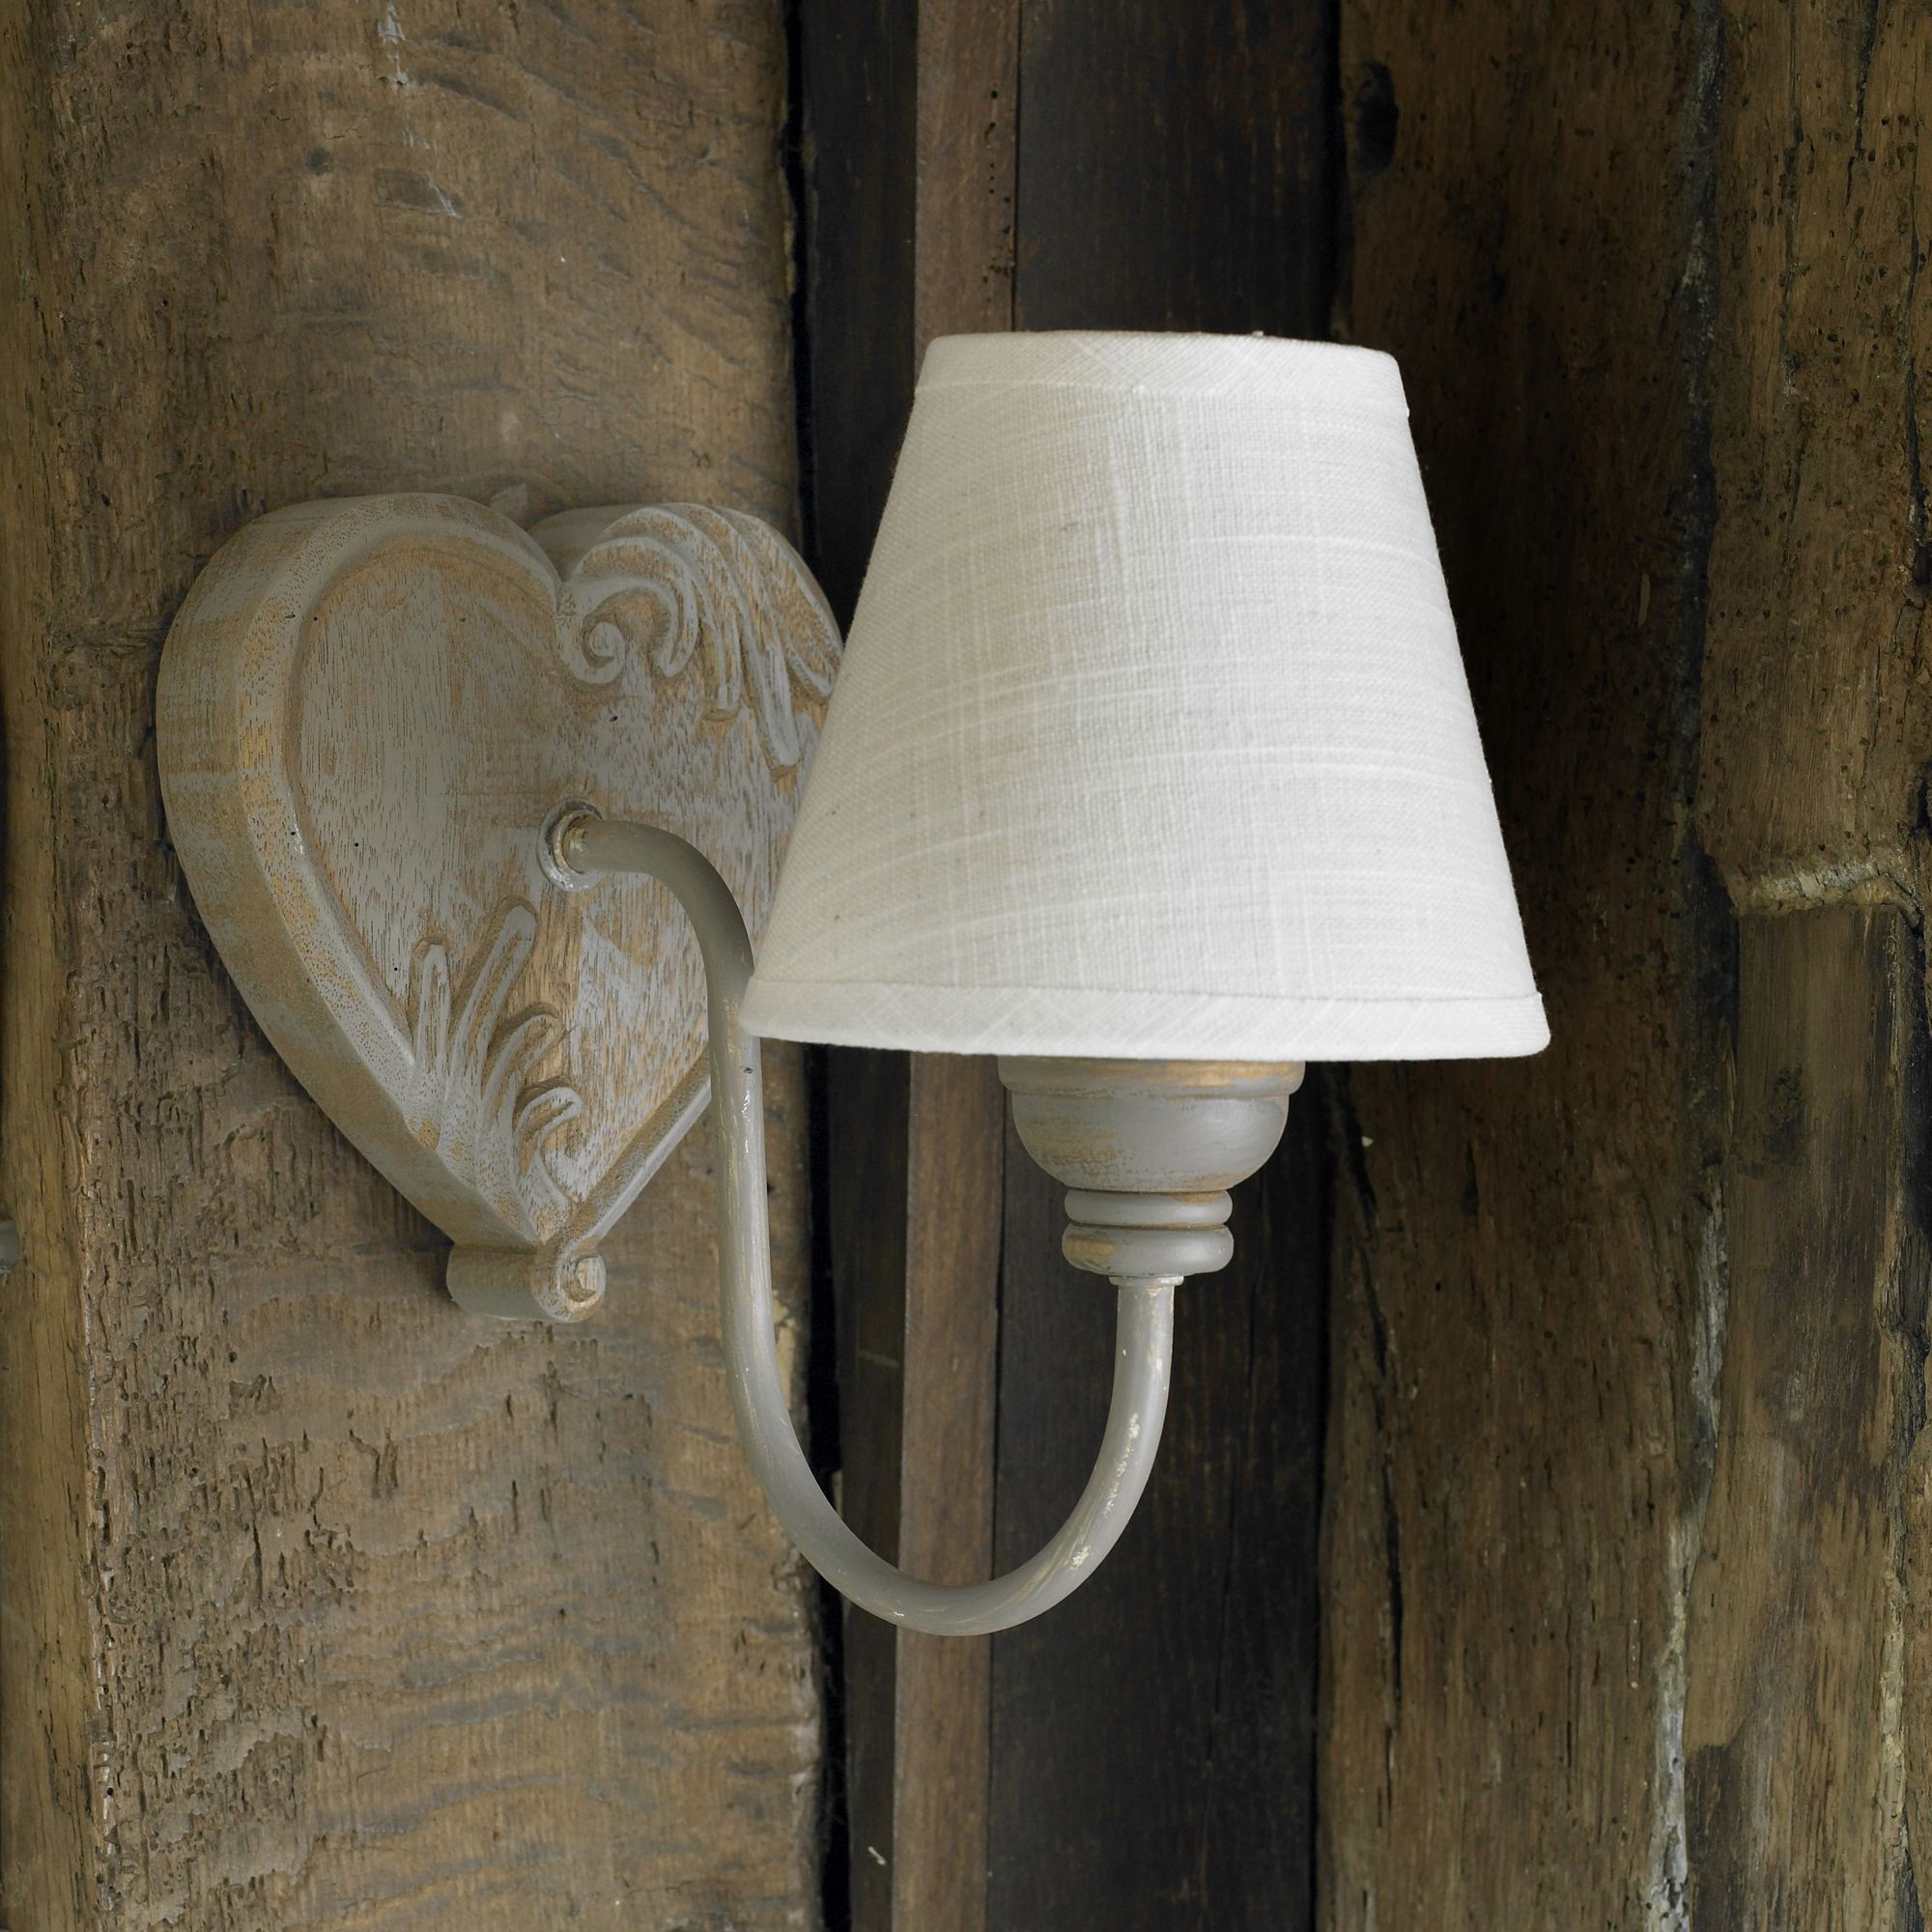 Rustic heart wall light french traditional gite project